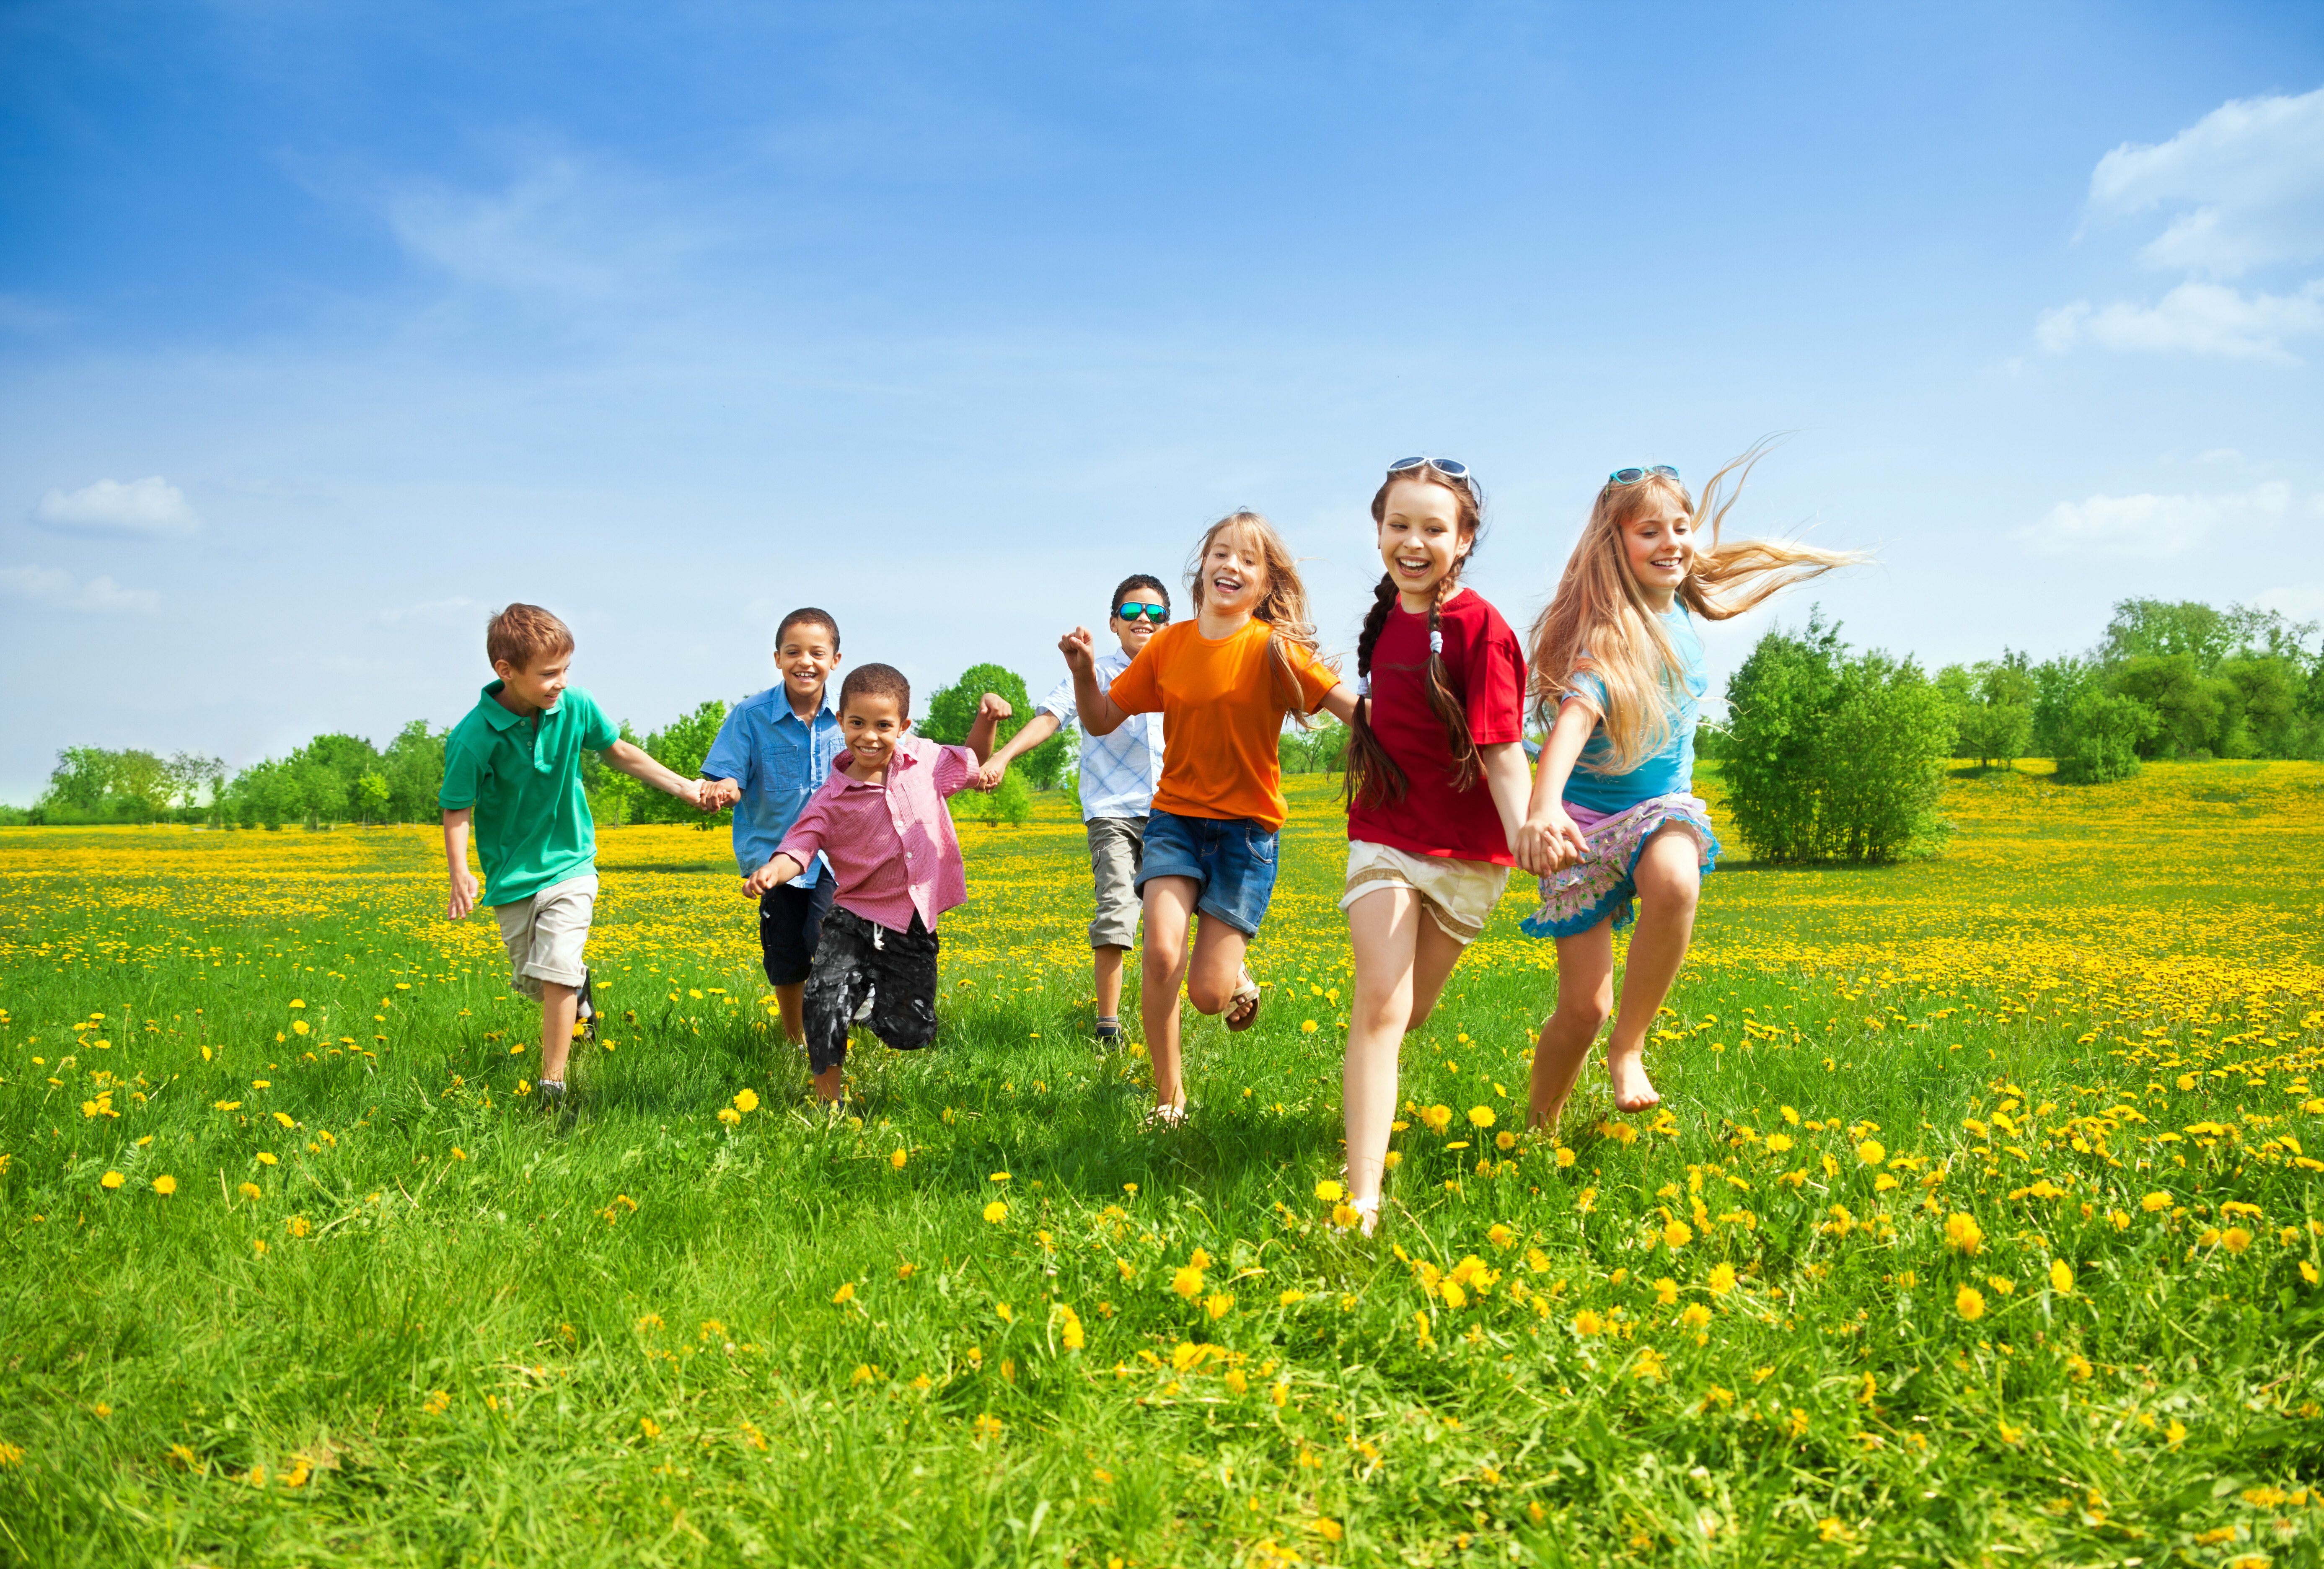 Group of children running and playing during summer time.